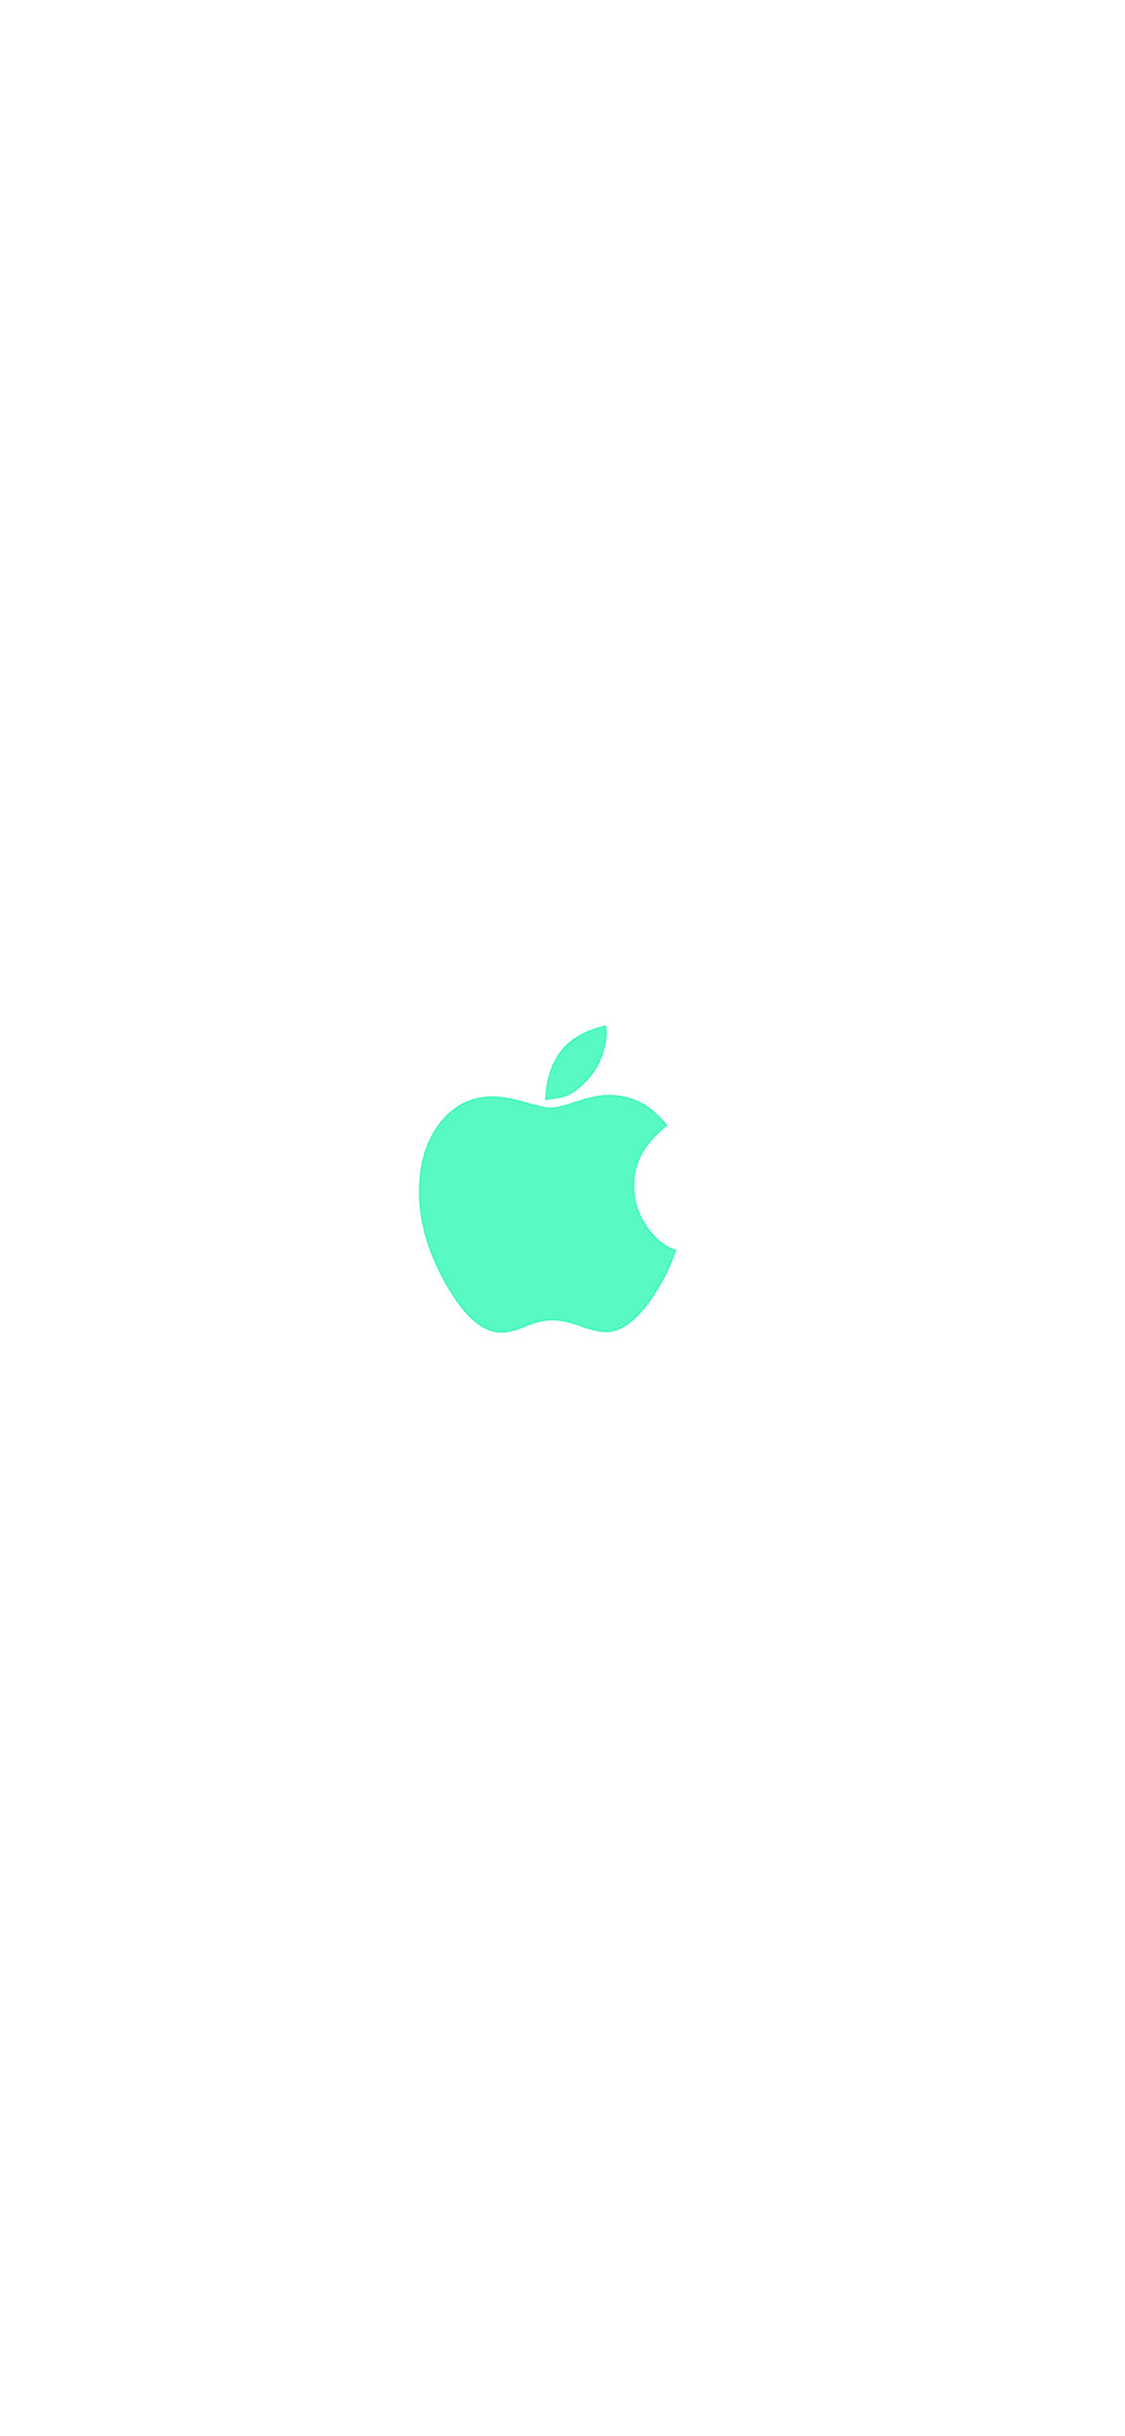 iPhoneXpapers.com-Apple-iPhone-wallpaper-va14-apple-simple-logo-color-green-minimal